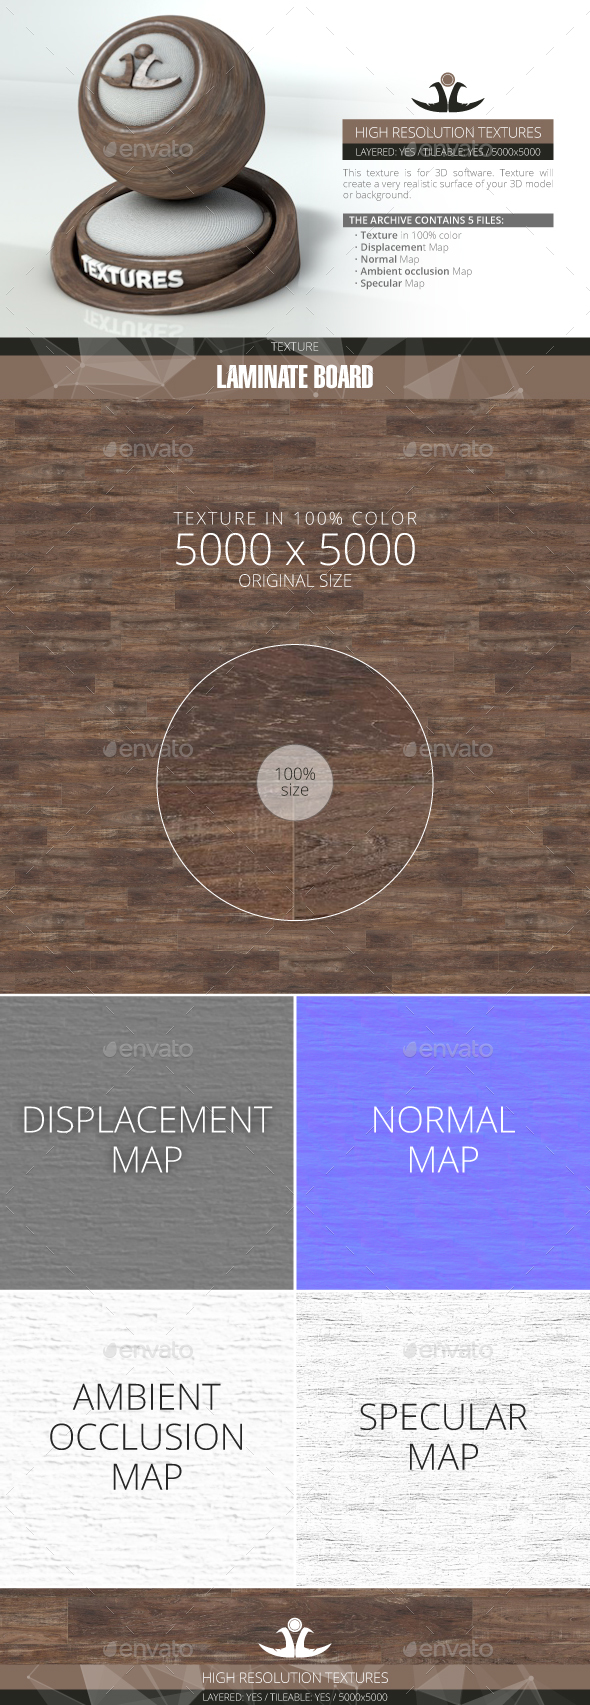 Laminate Board 82 - 3DOcean Item for Sale